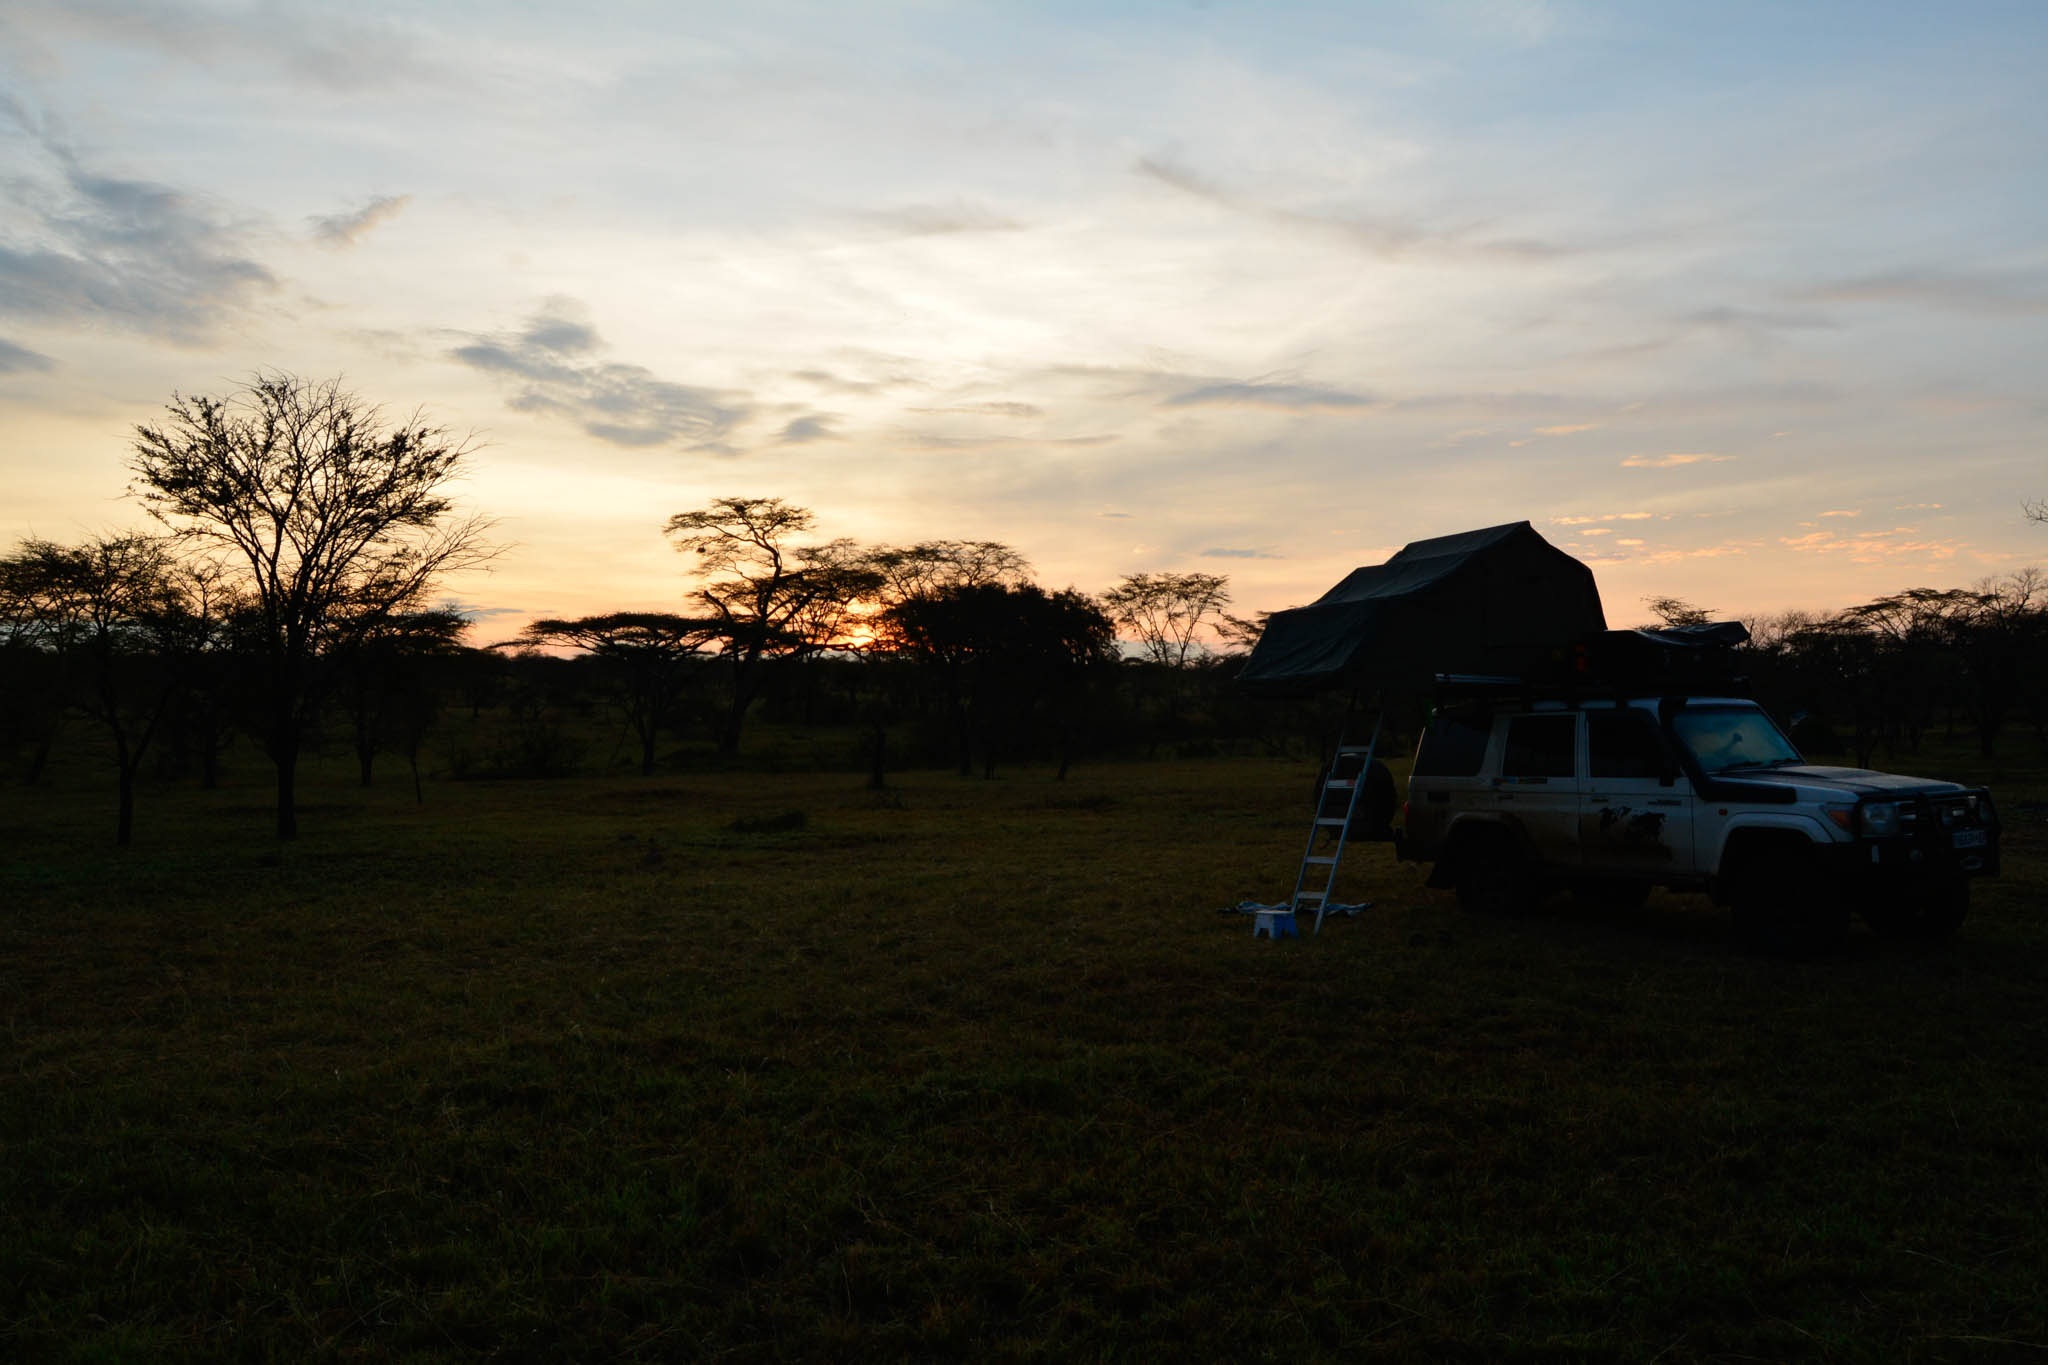 Our camp site in the Serengeti